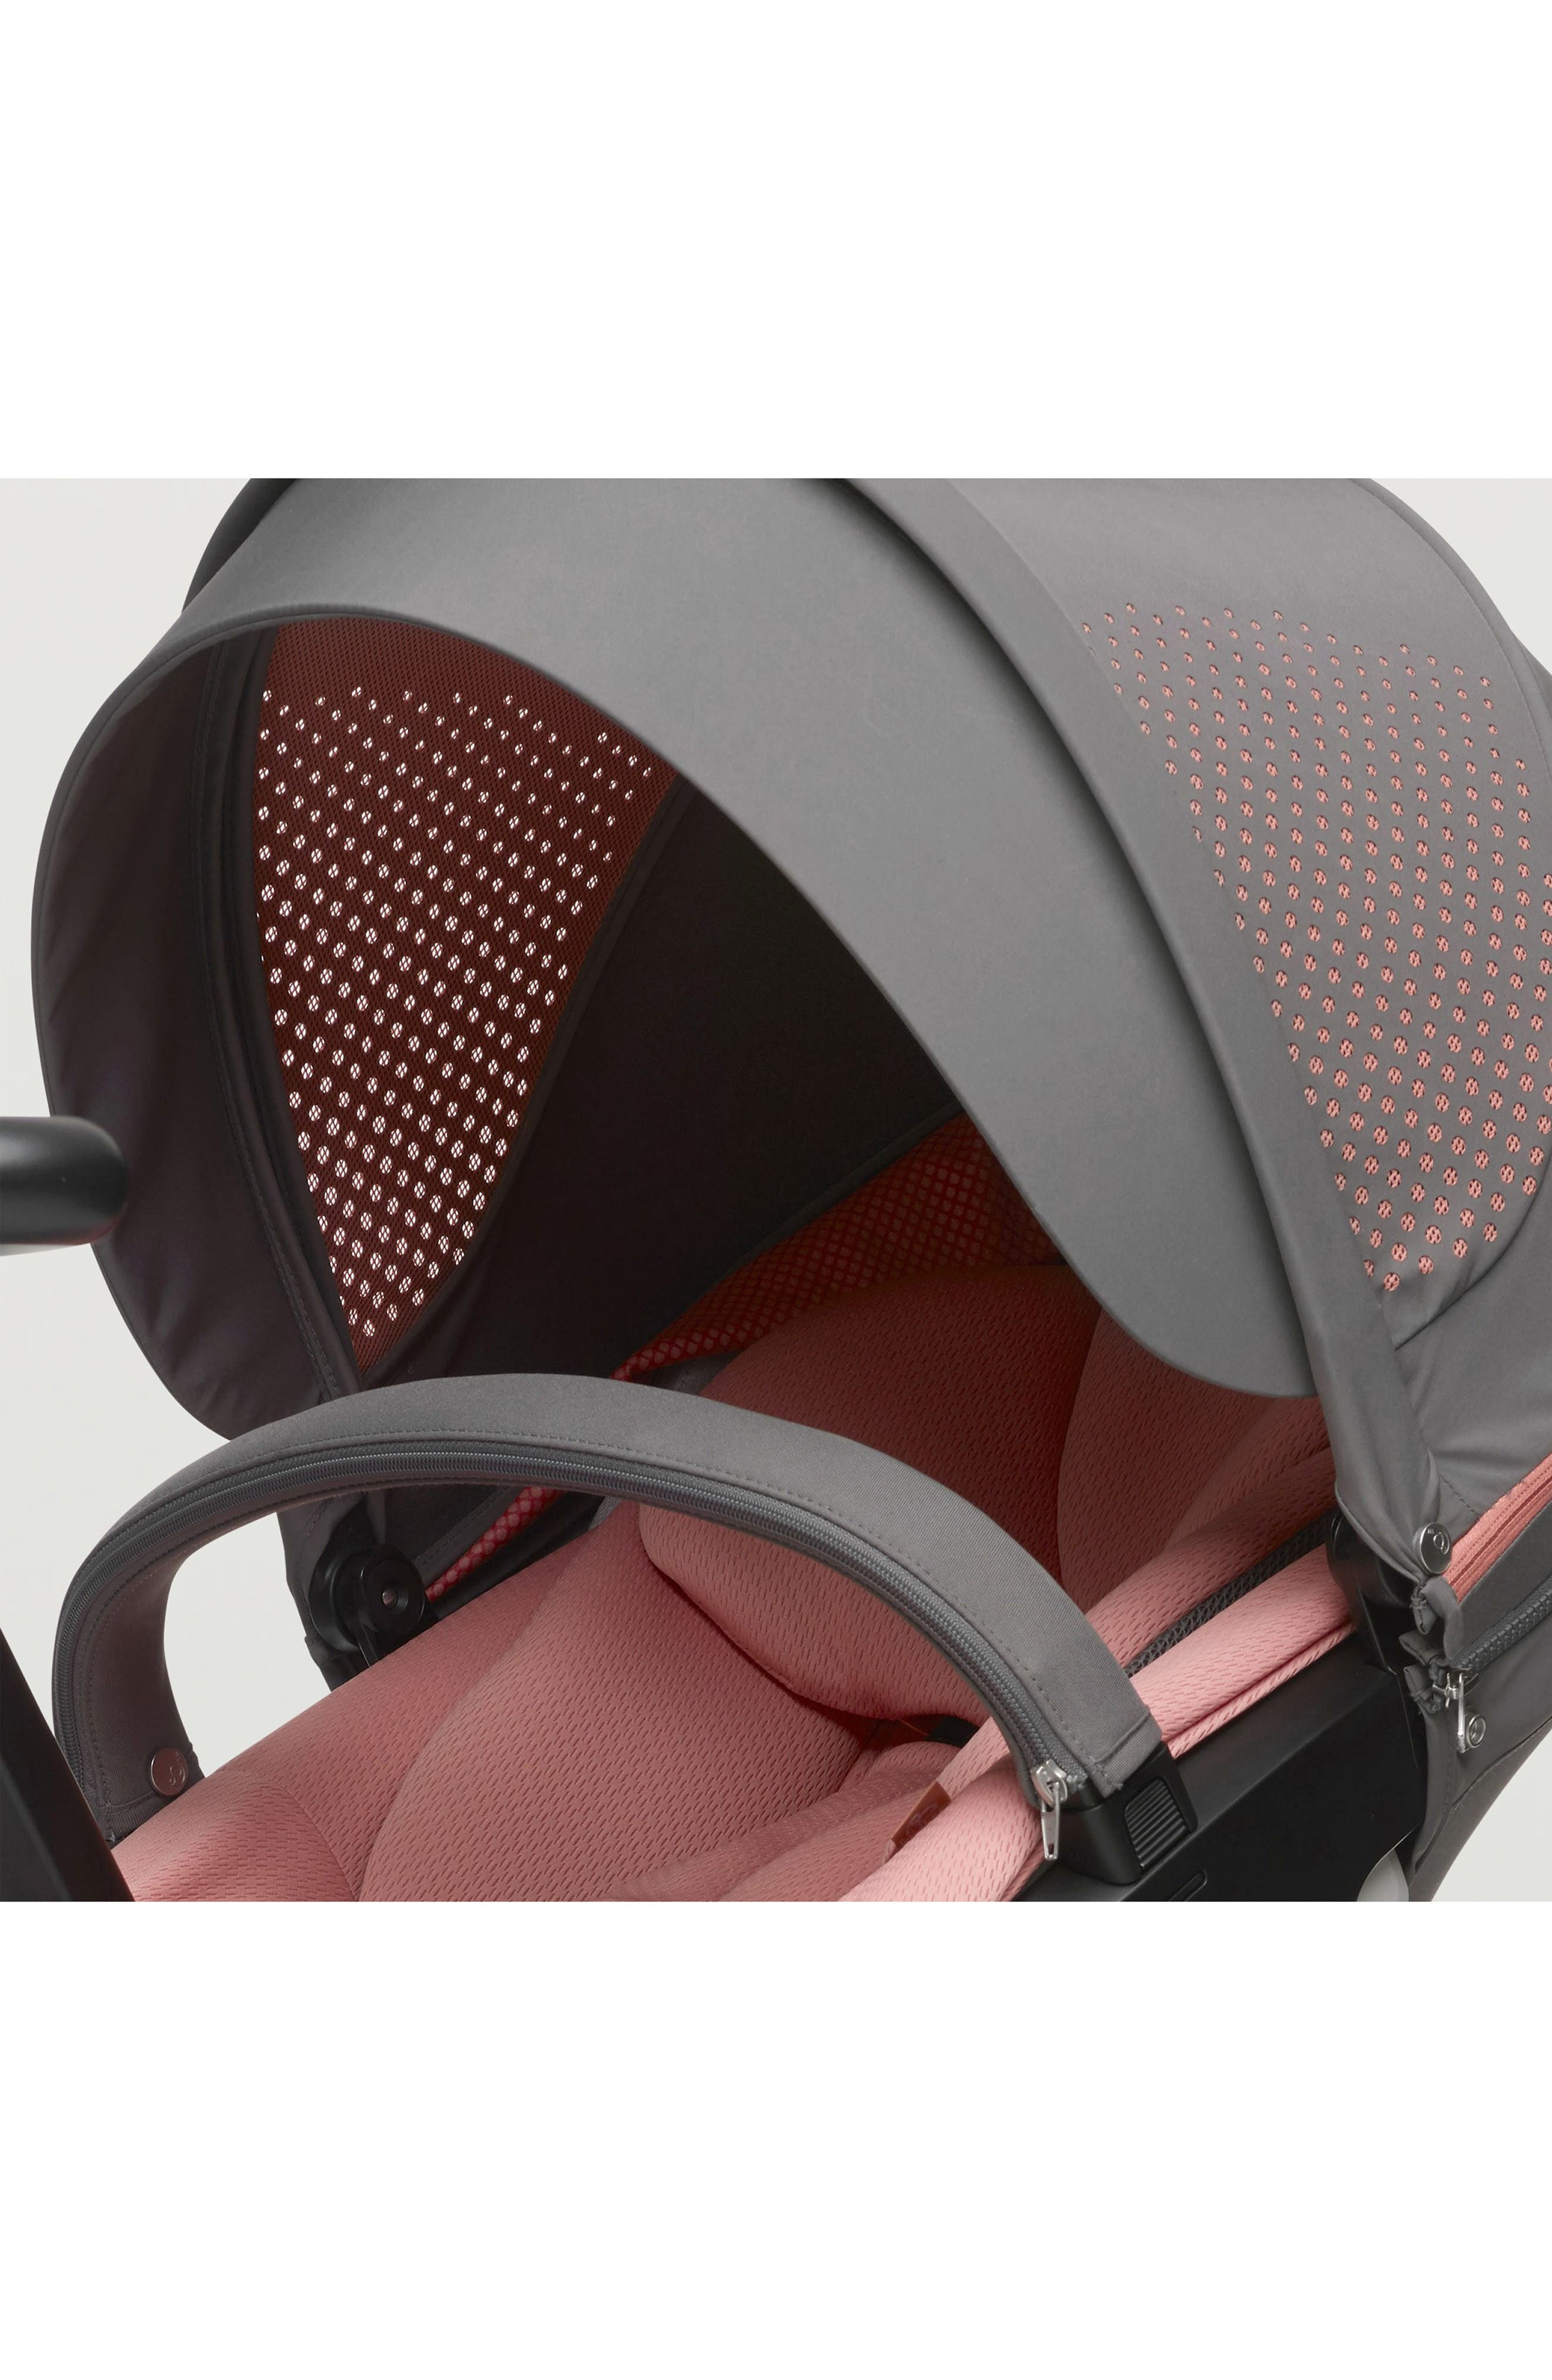 Xplory<sup>®</sup> V5 Coral Athleisure Stroller,                             Alternate thumbnail 5, color,